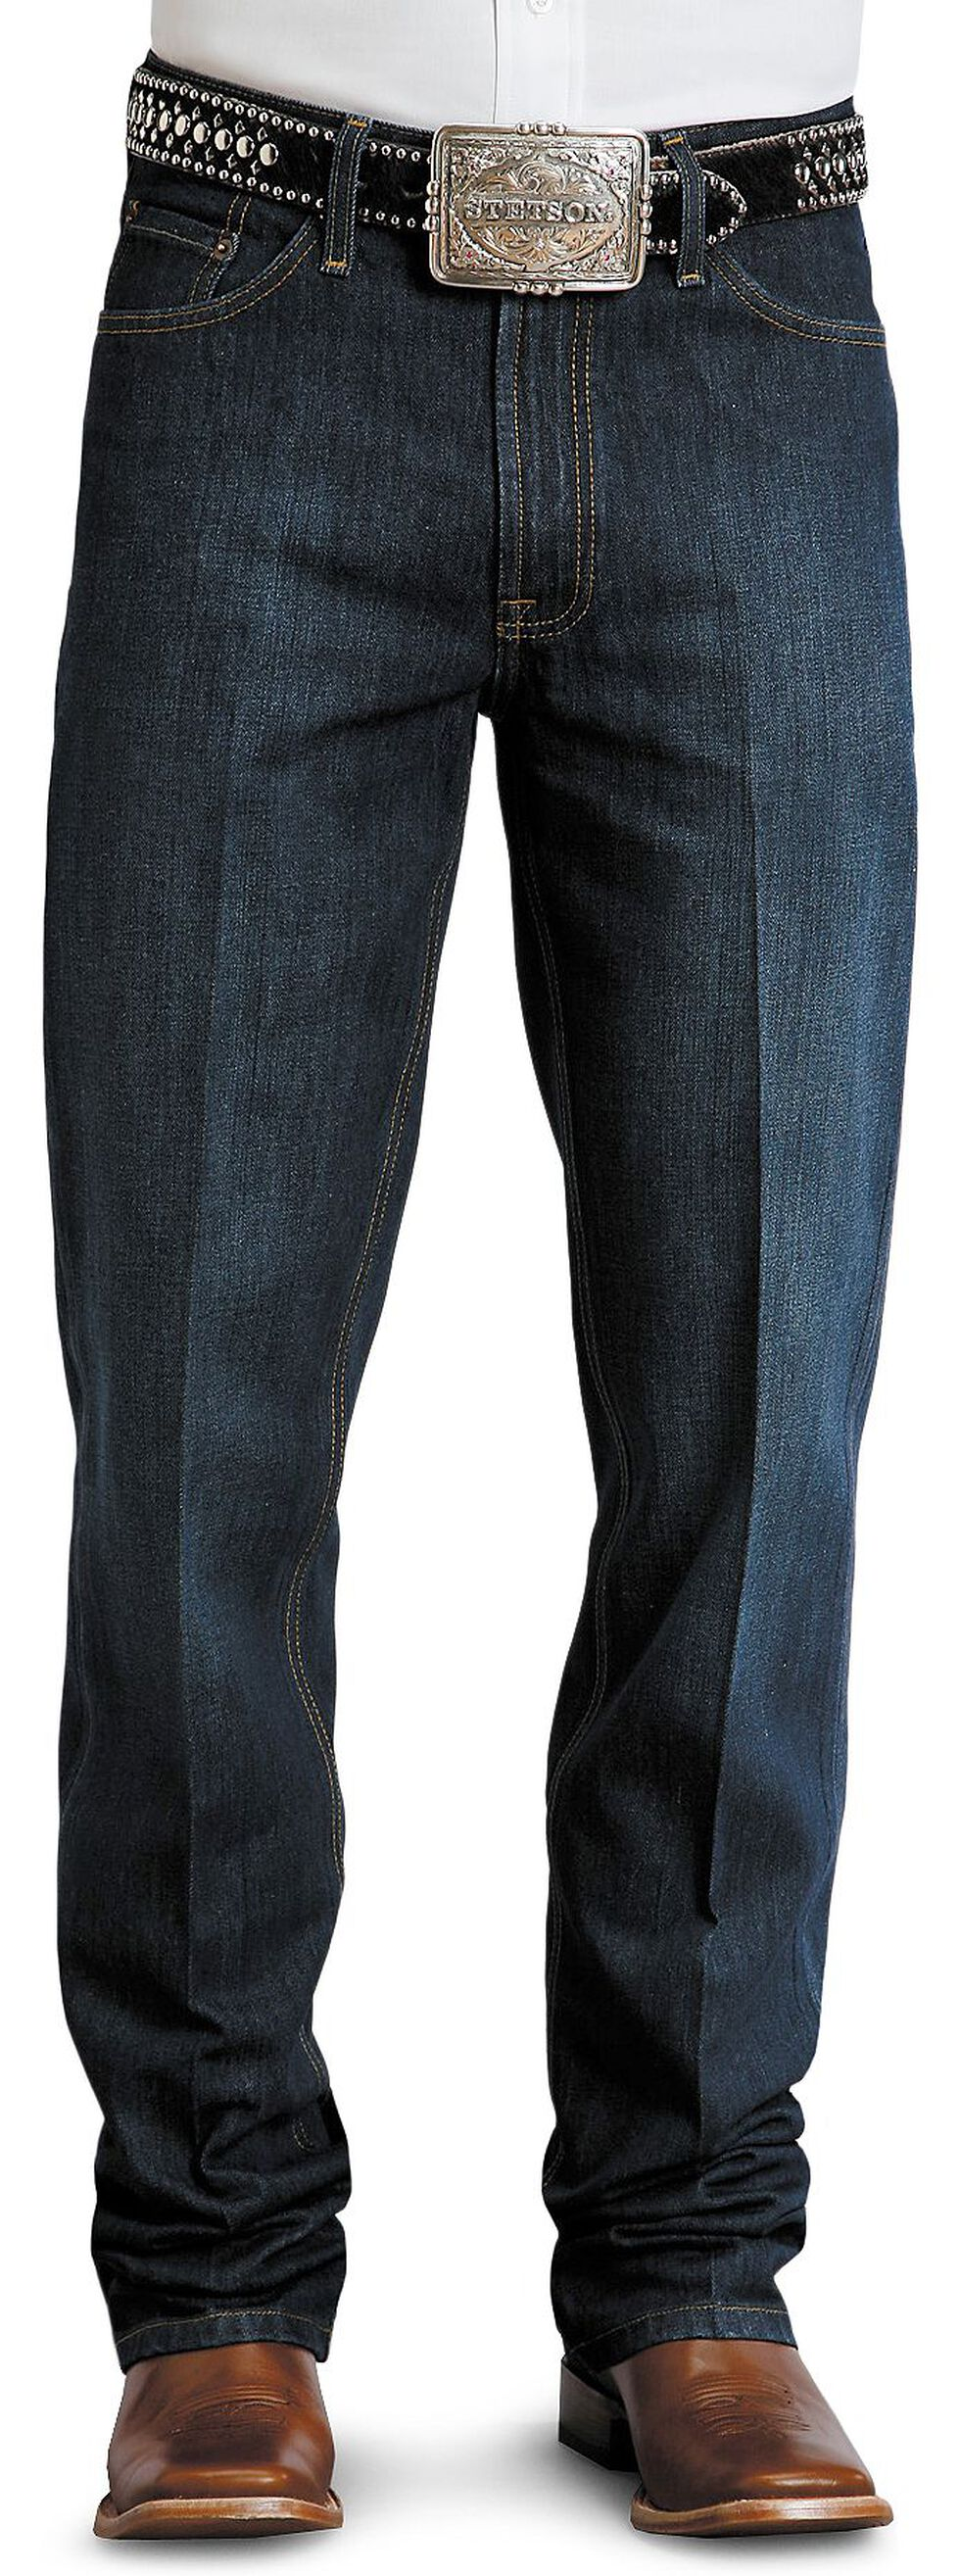 Stetson Standard Relaxed Fit Jeans, Dark Rinse, hi-res